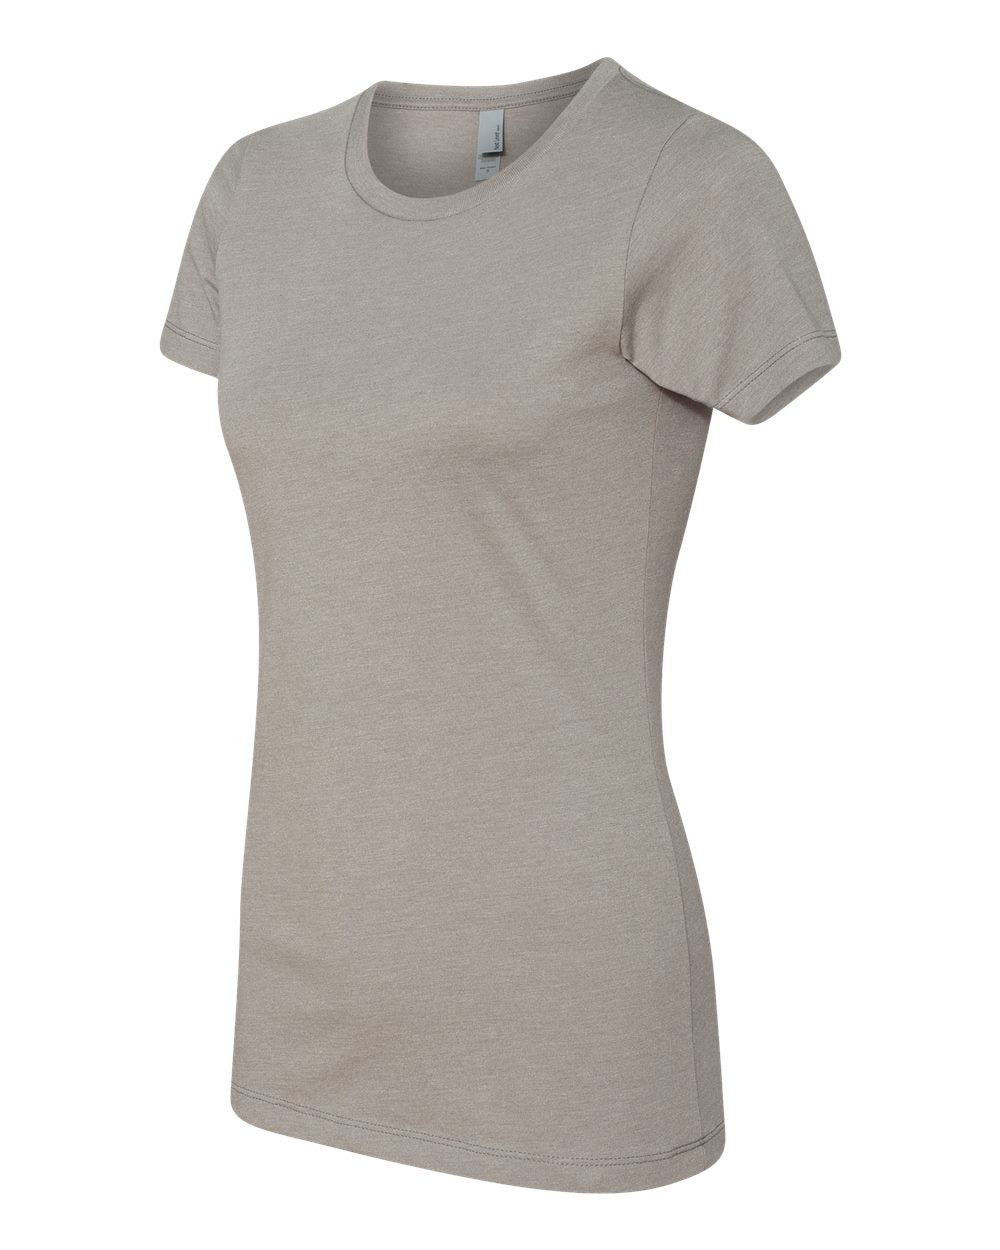 B&L Blank Canvas Women's Tee